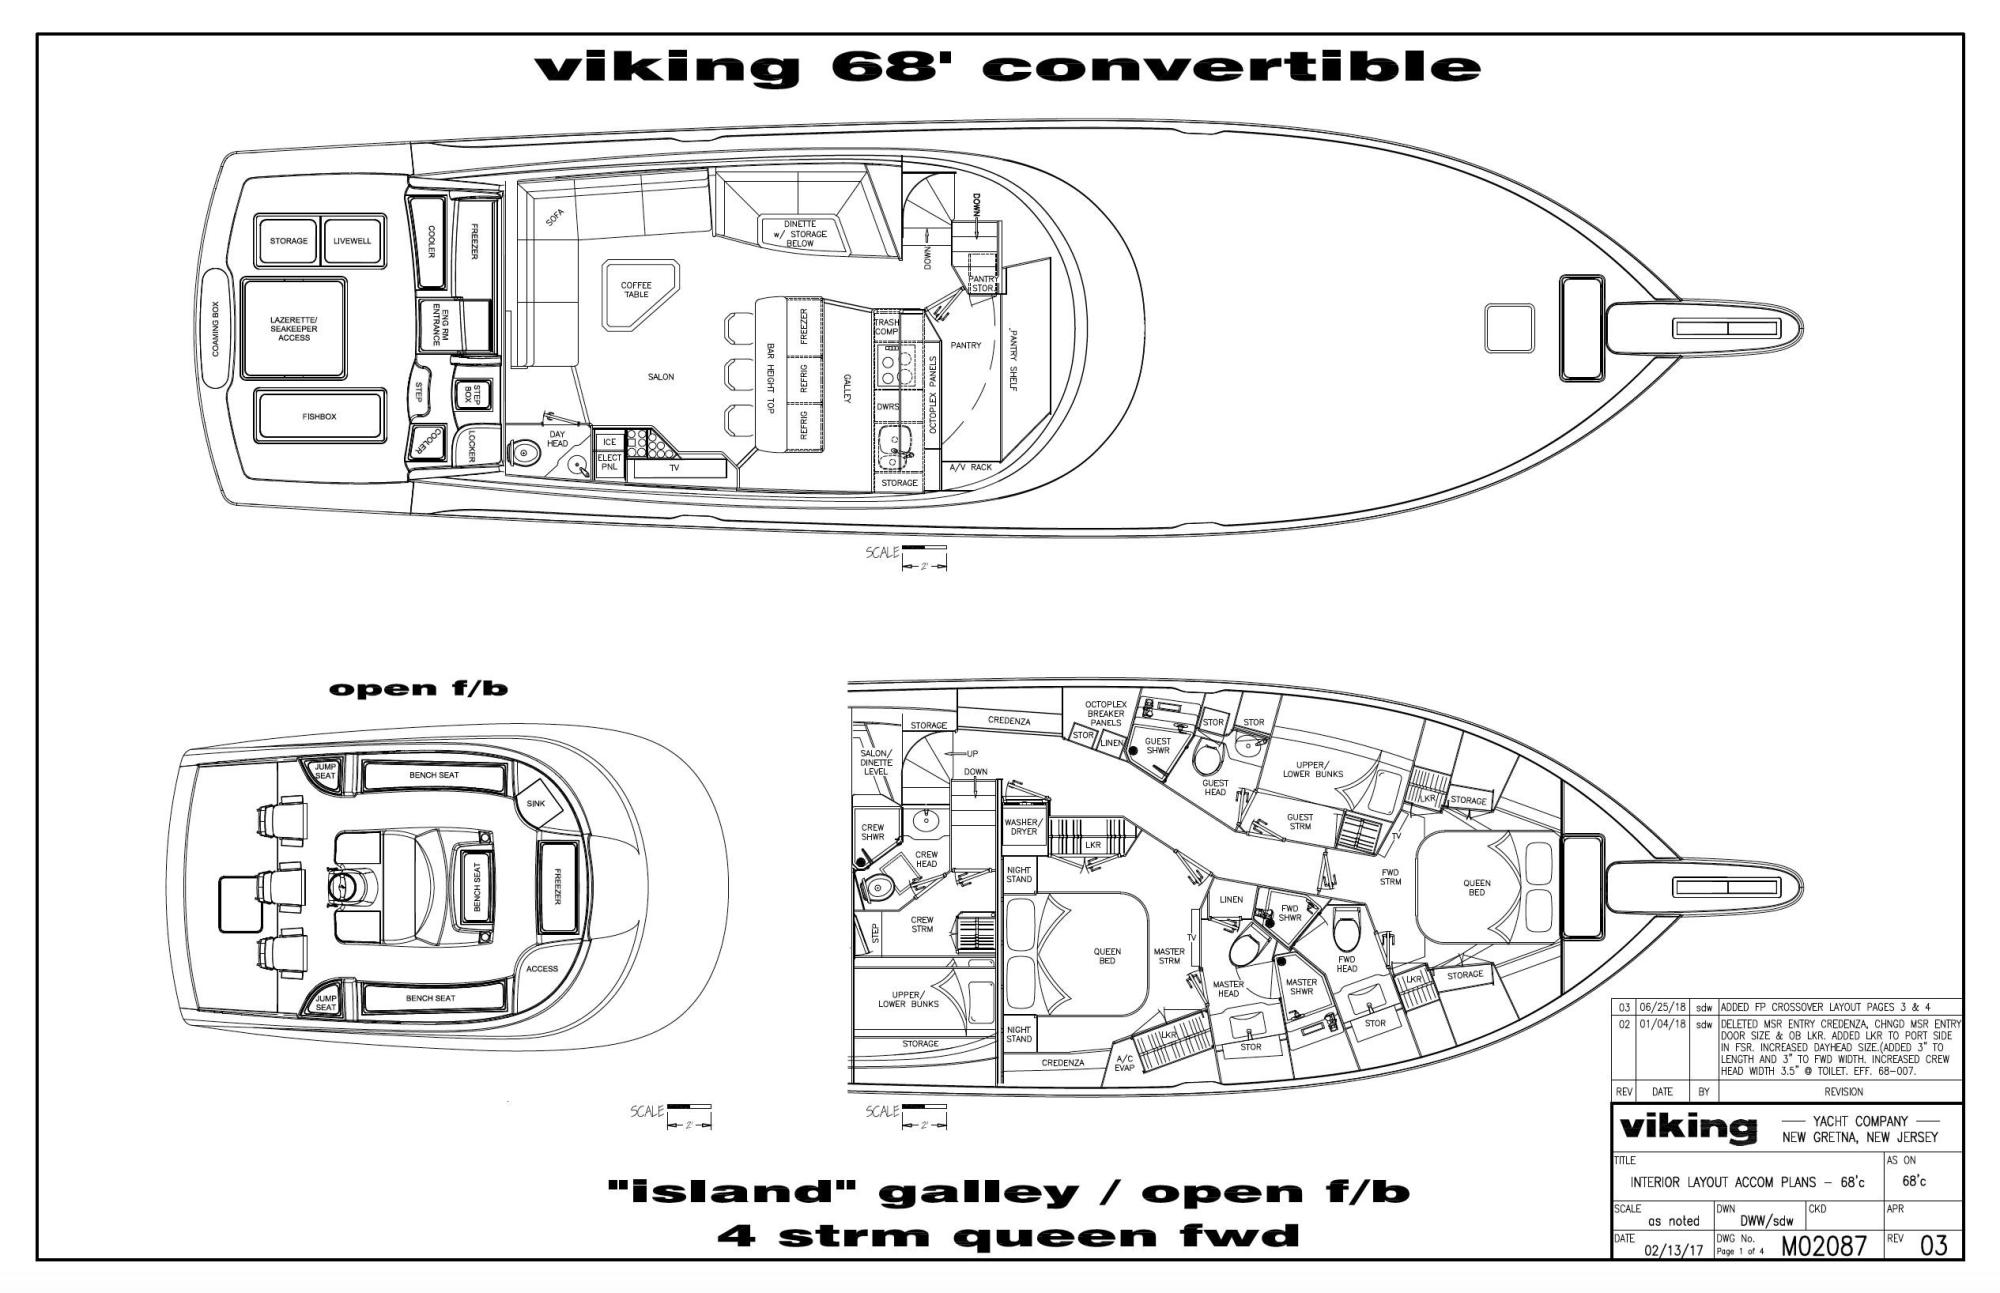 hight resolution of 68 viking 2019 viking 68 cnv starboard queen fwd layout